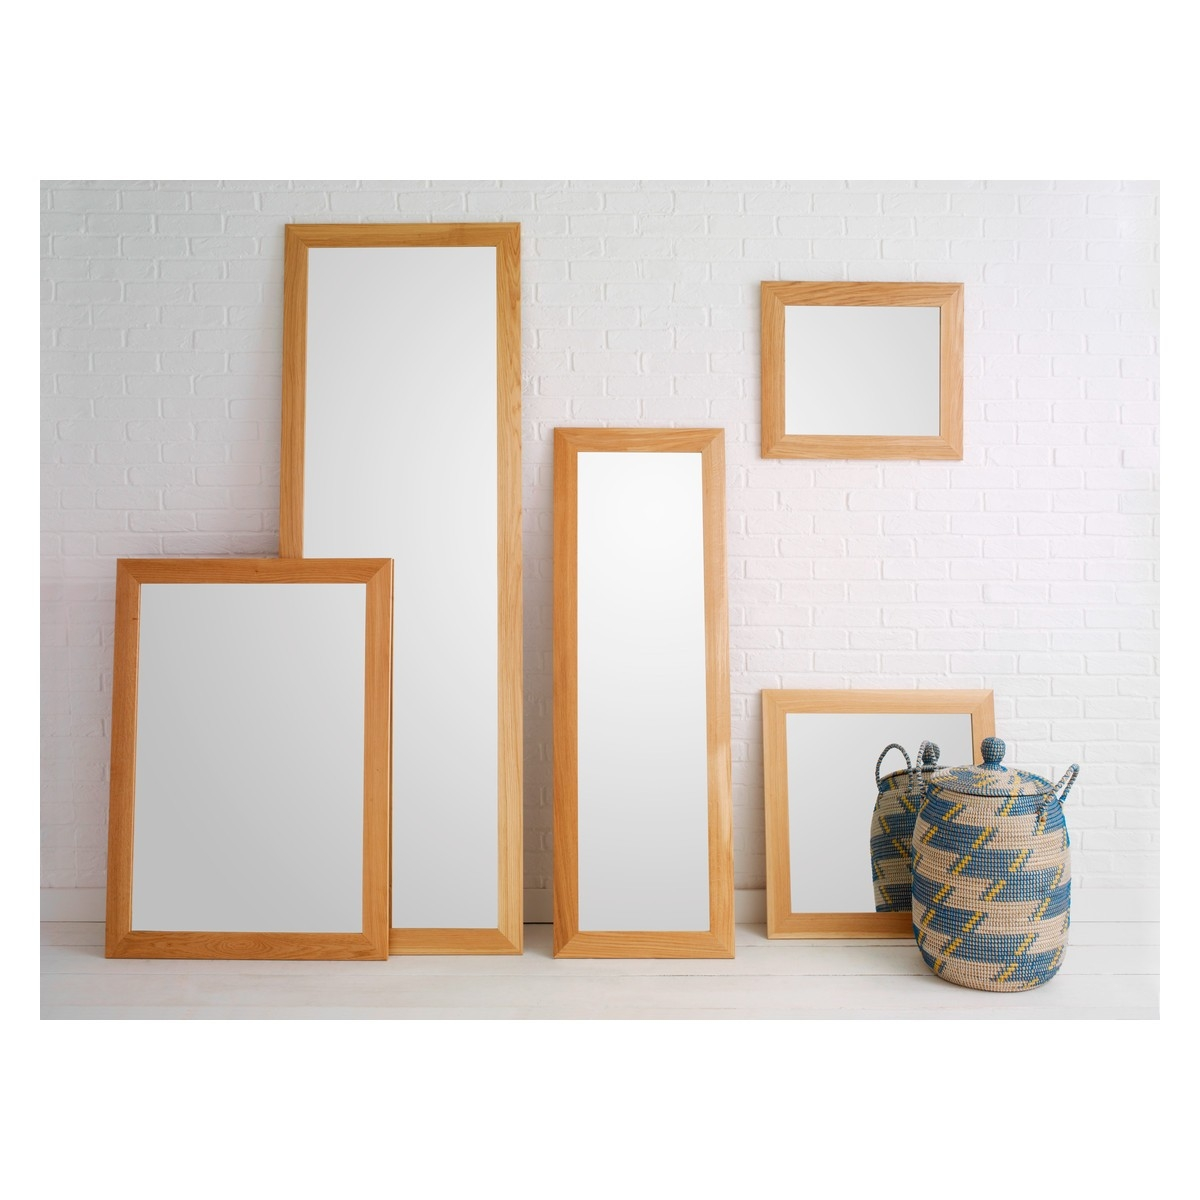 Marlo 70 X 100cm Rectangular Oak Wall Mirror Buy Now At Habitat Uk Intended For Oak Wall Mirrors (Image 8 of 15)